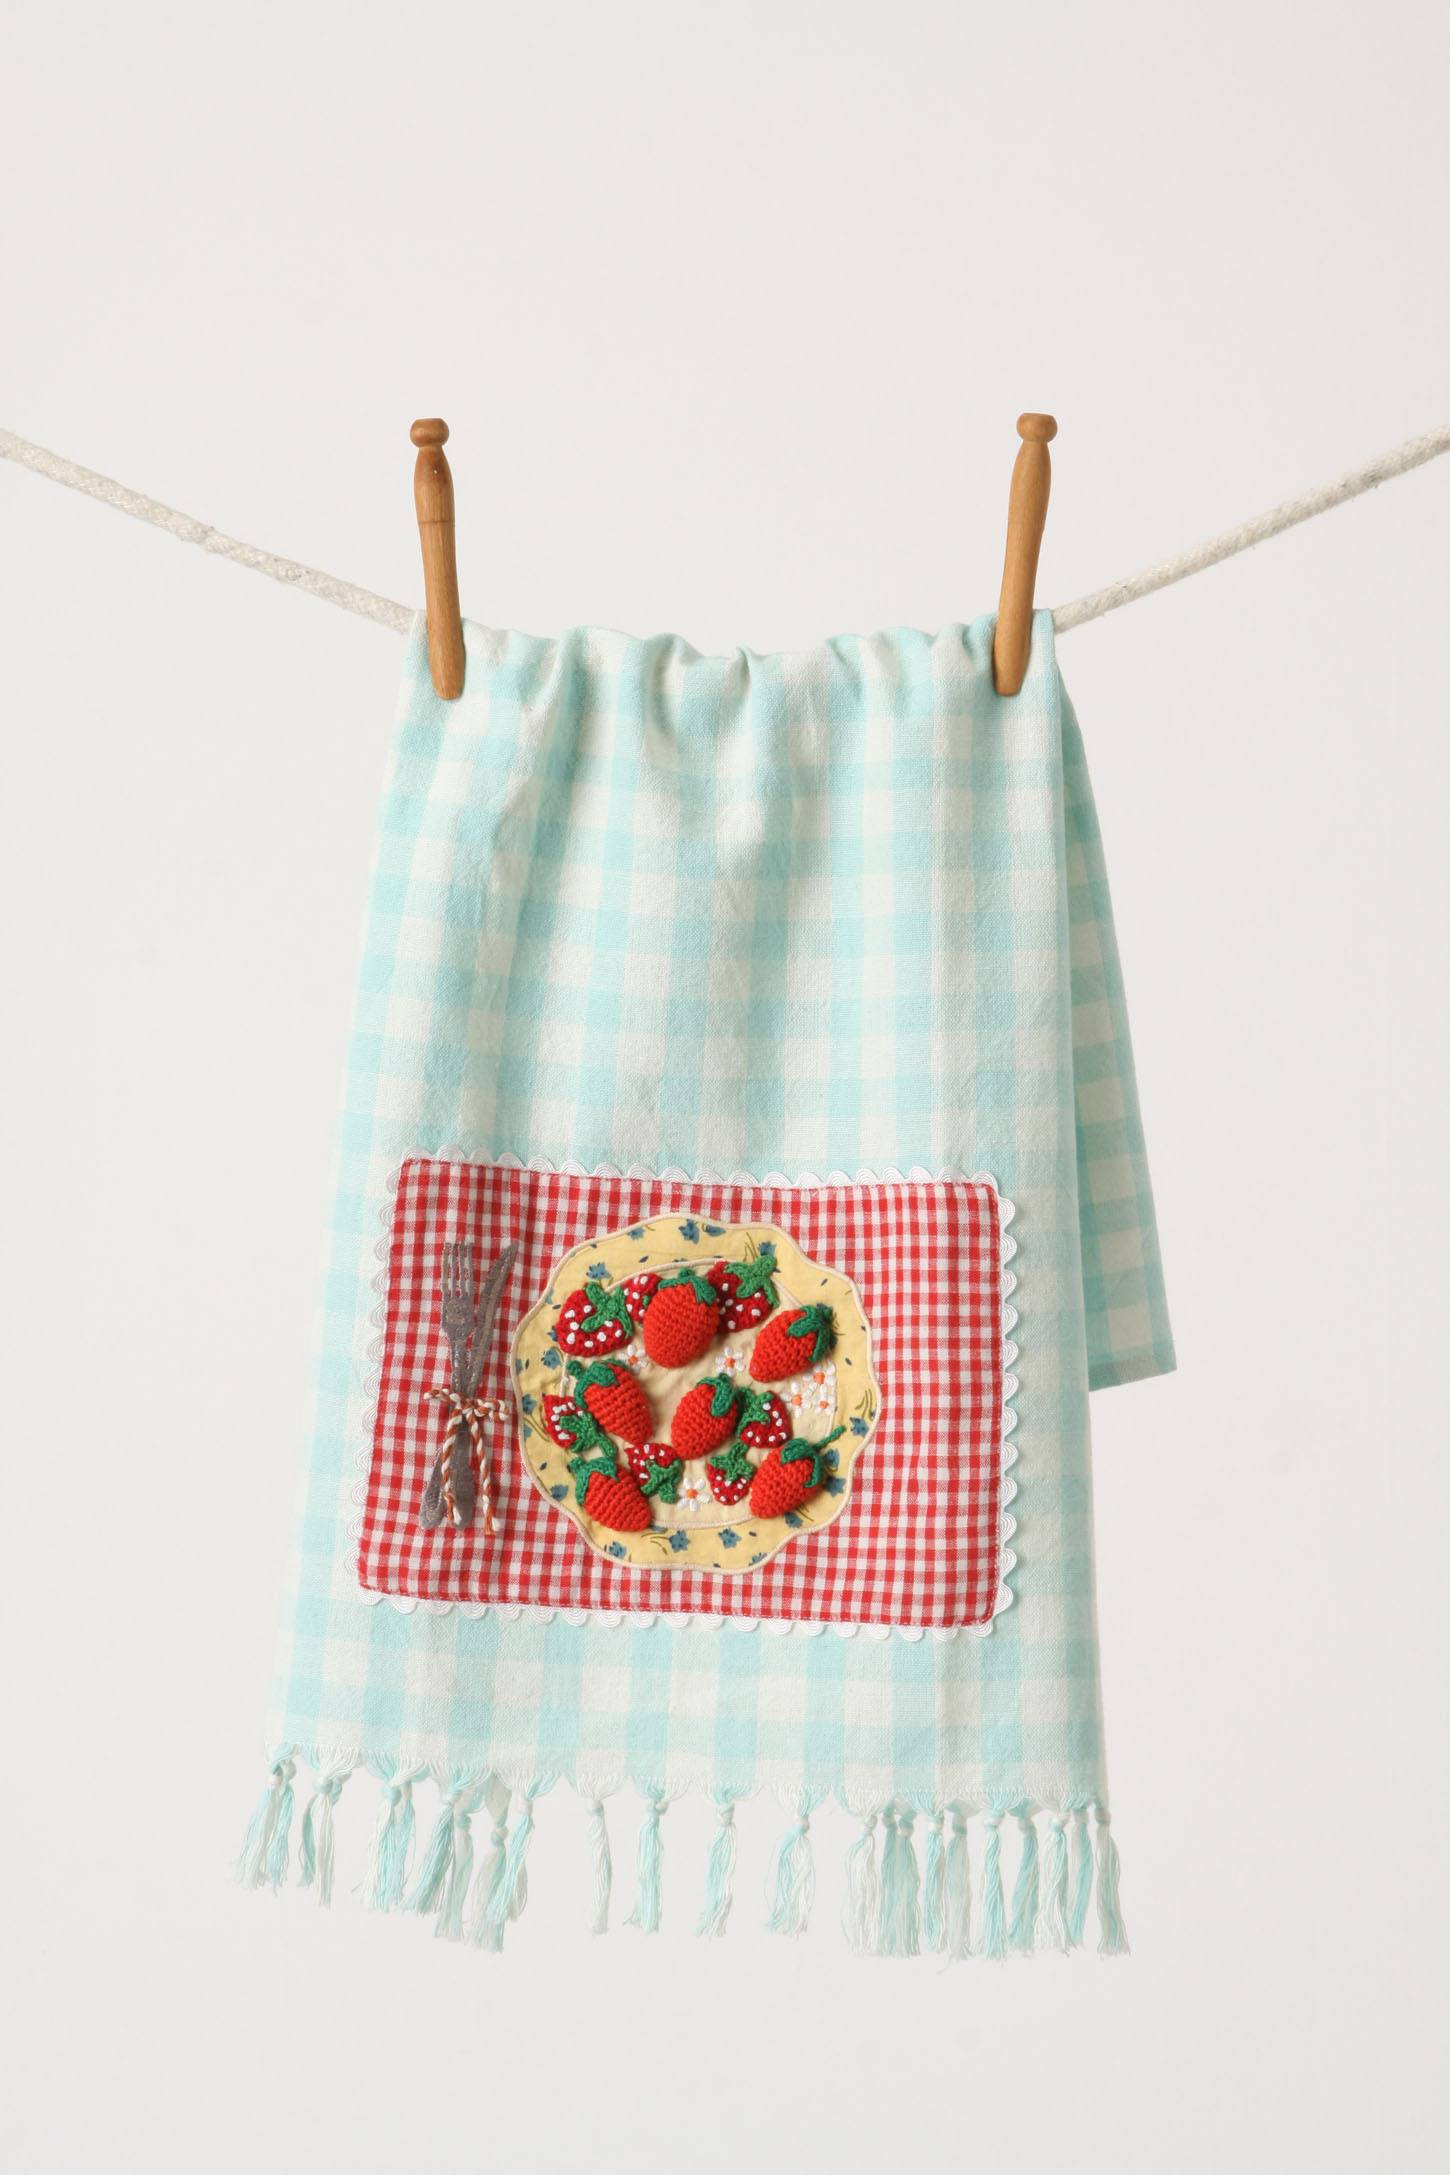 First Eats Dishtowel, Strawberries & Blooms | Image Courtesy of Anthropologie